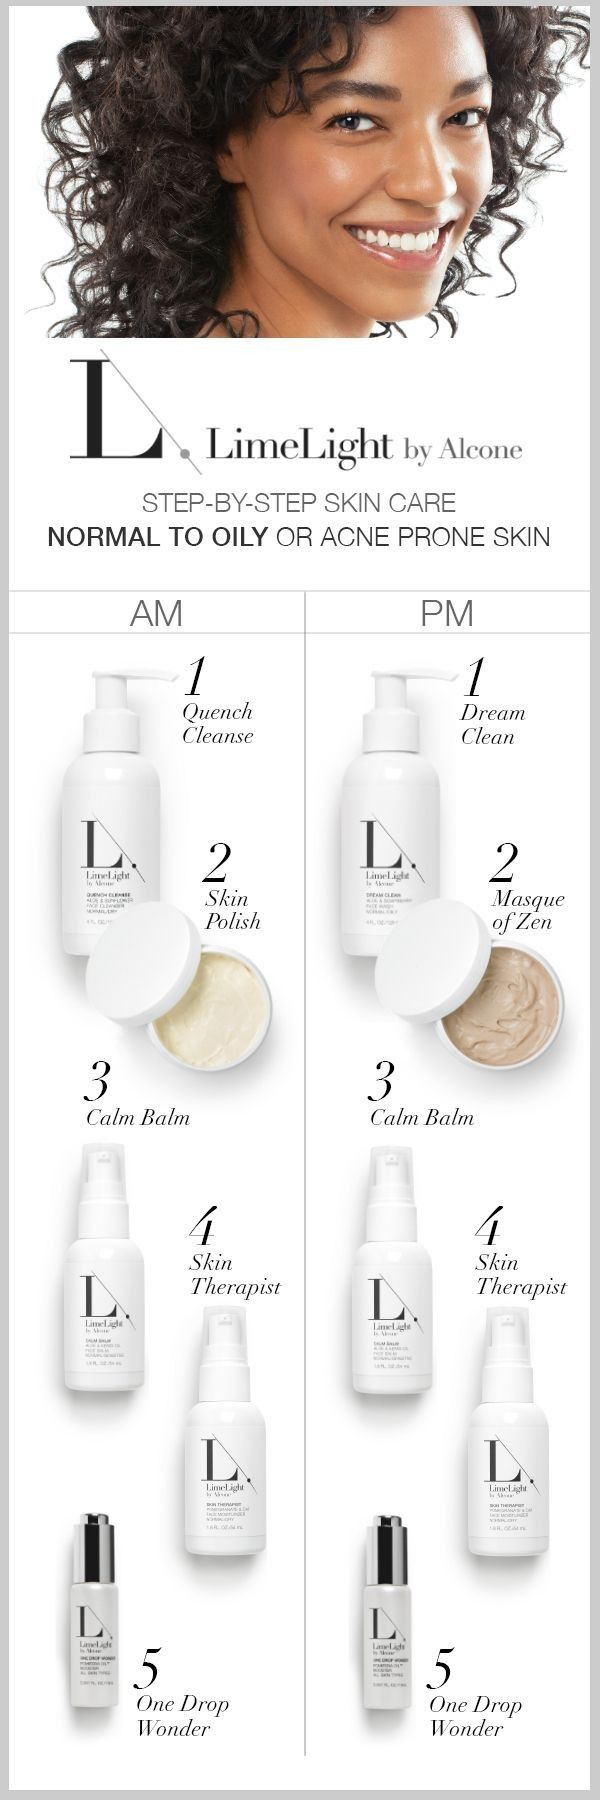 Acne Prone Skin Oily Skin Here S Your Limelight Products And